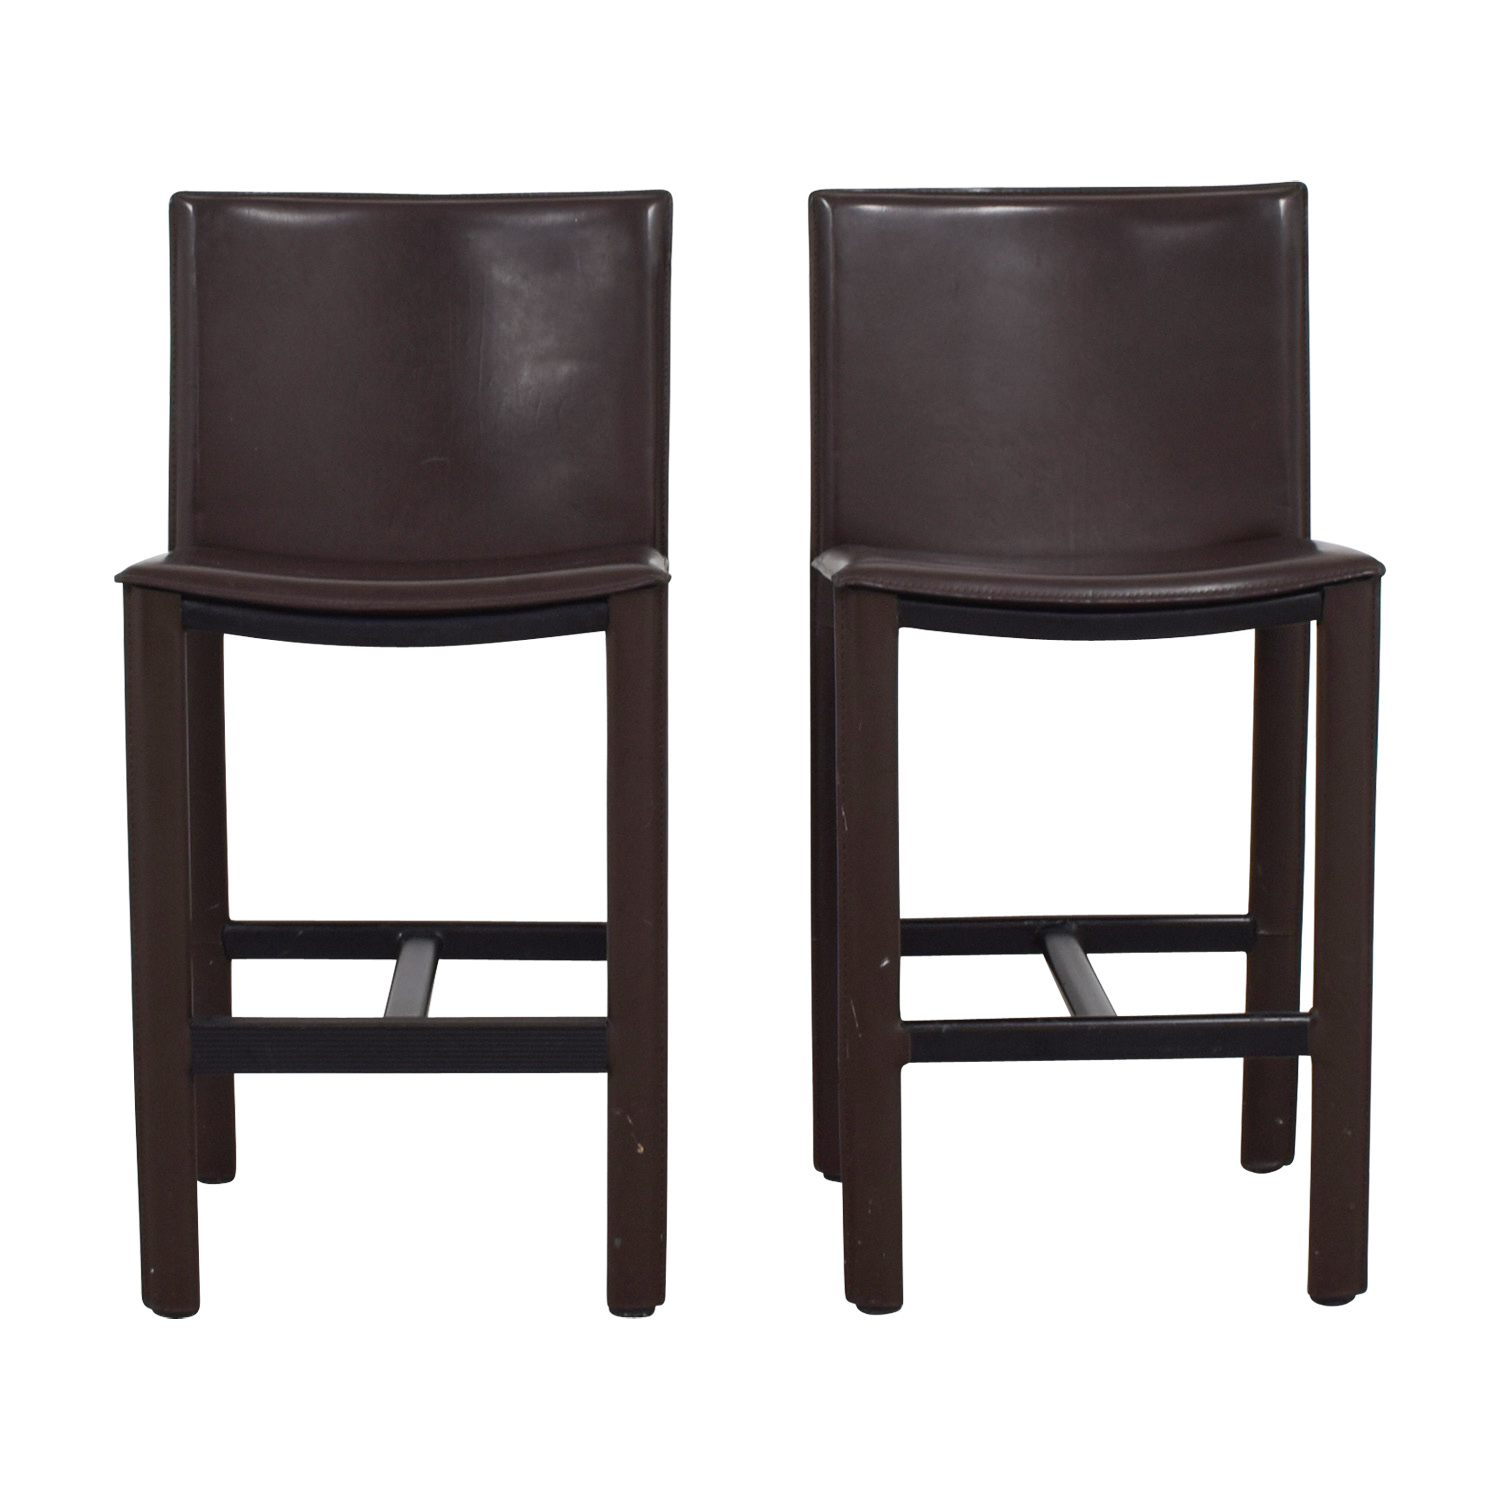 buy Room & Board Room & Board Brown Leather Bar Stools online